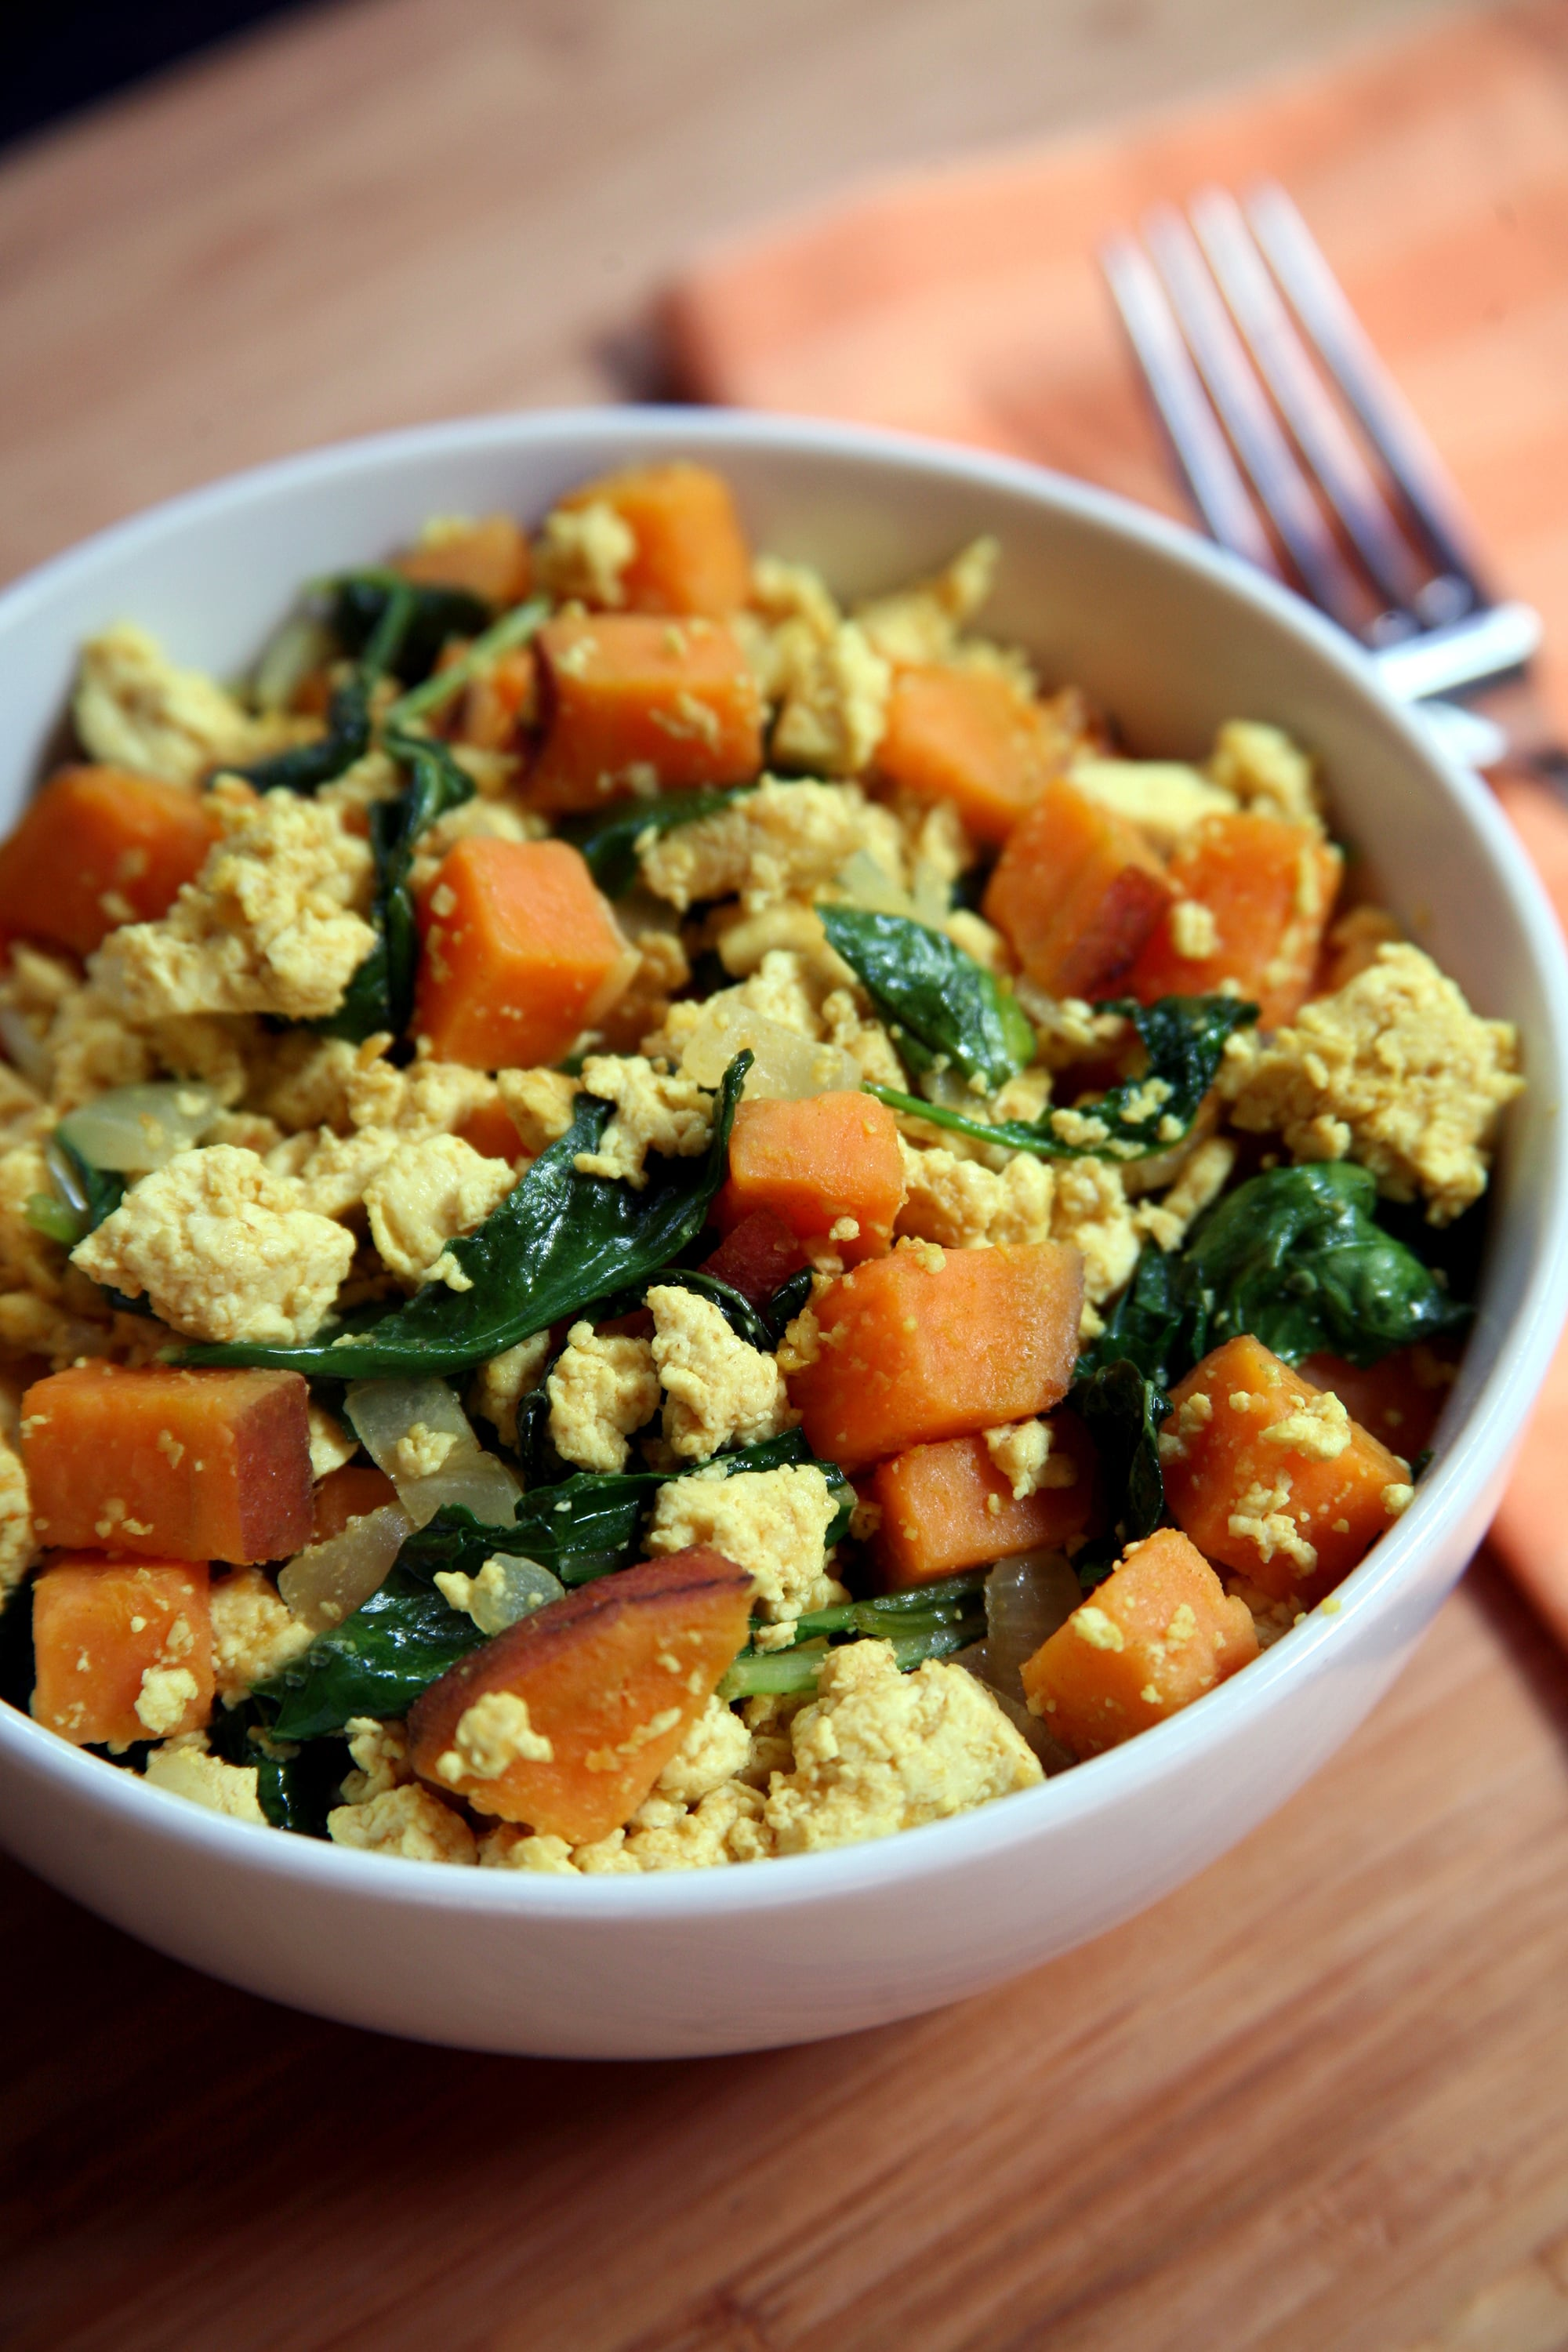 Protein-Packed Breakfast: Tofu Scramble With Kale and Sweet Potatoes